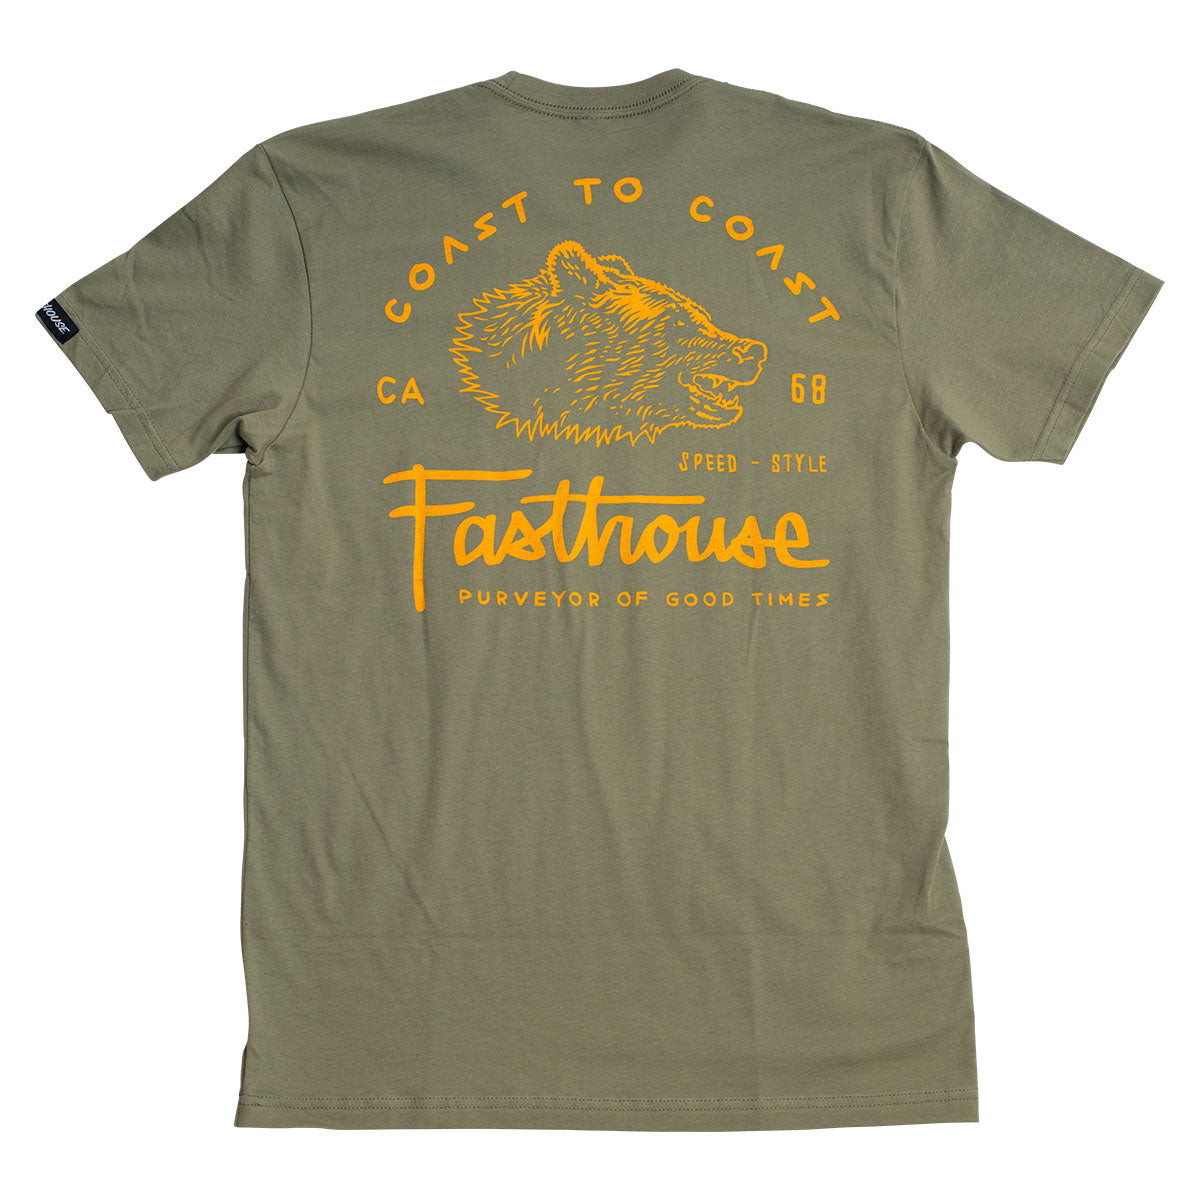 Coast to Coast Tee - Light Olive